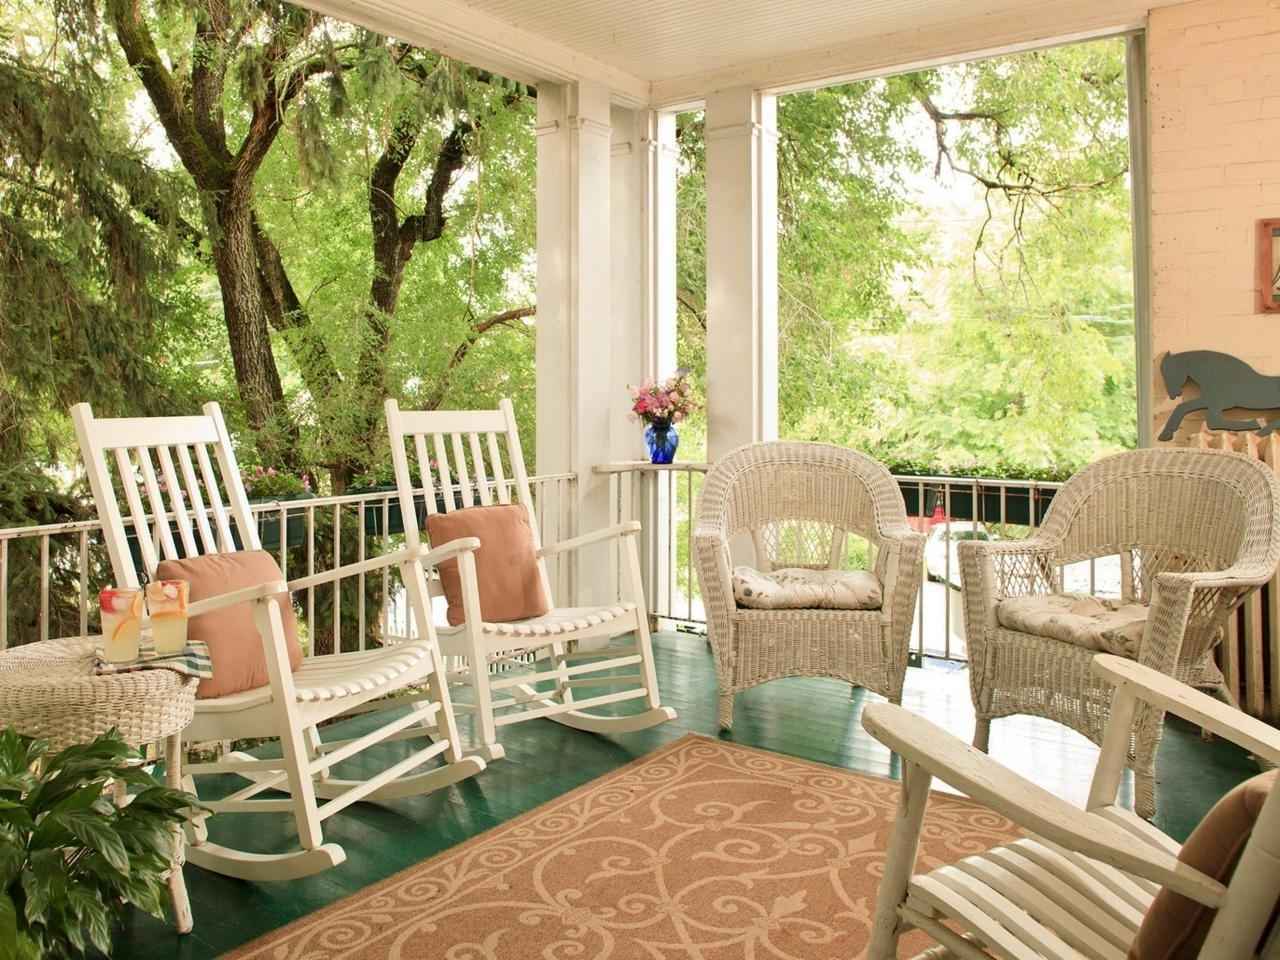 Latest Rocking Chairs For Front Porch Regarding Front Porch Rocking Chairs For Decoration Karenefoley Porch Ever (View 4 of 15)